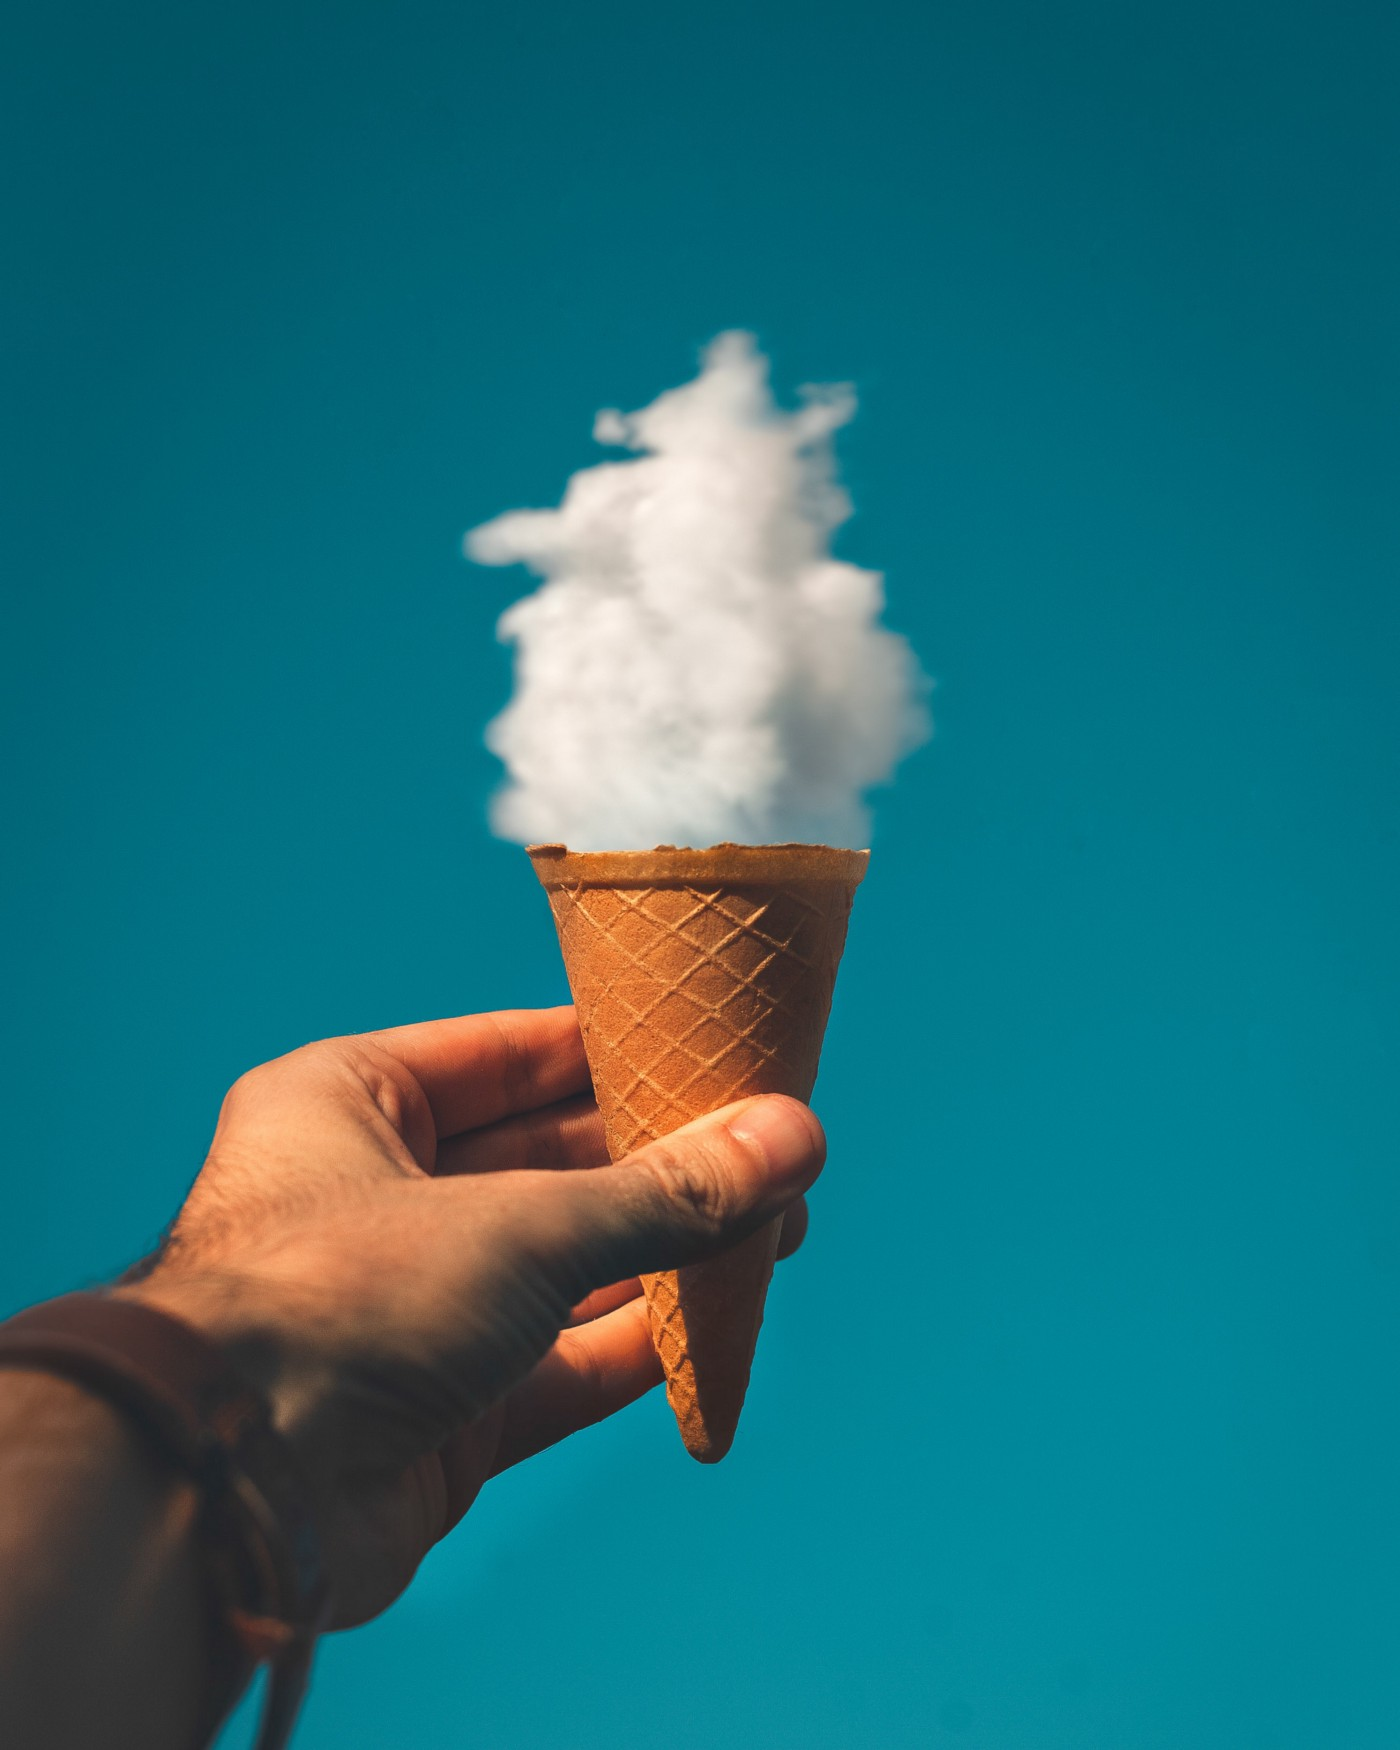 Ice cream cone being held up against a blue sky with a fluffy white cloud placed so it resembles ice cream in the cone.